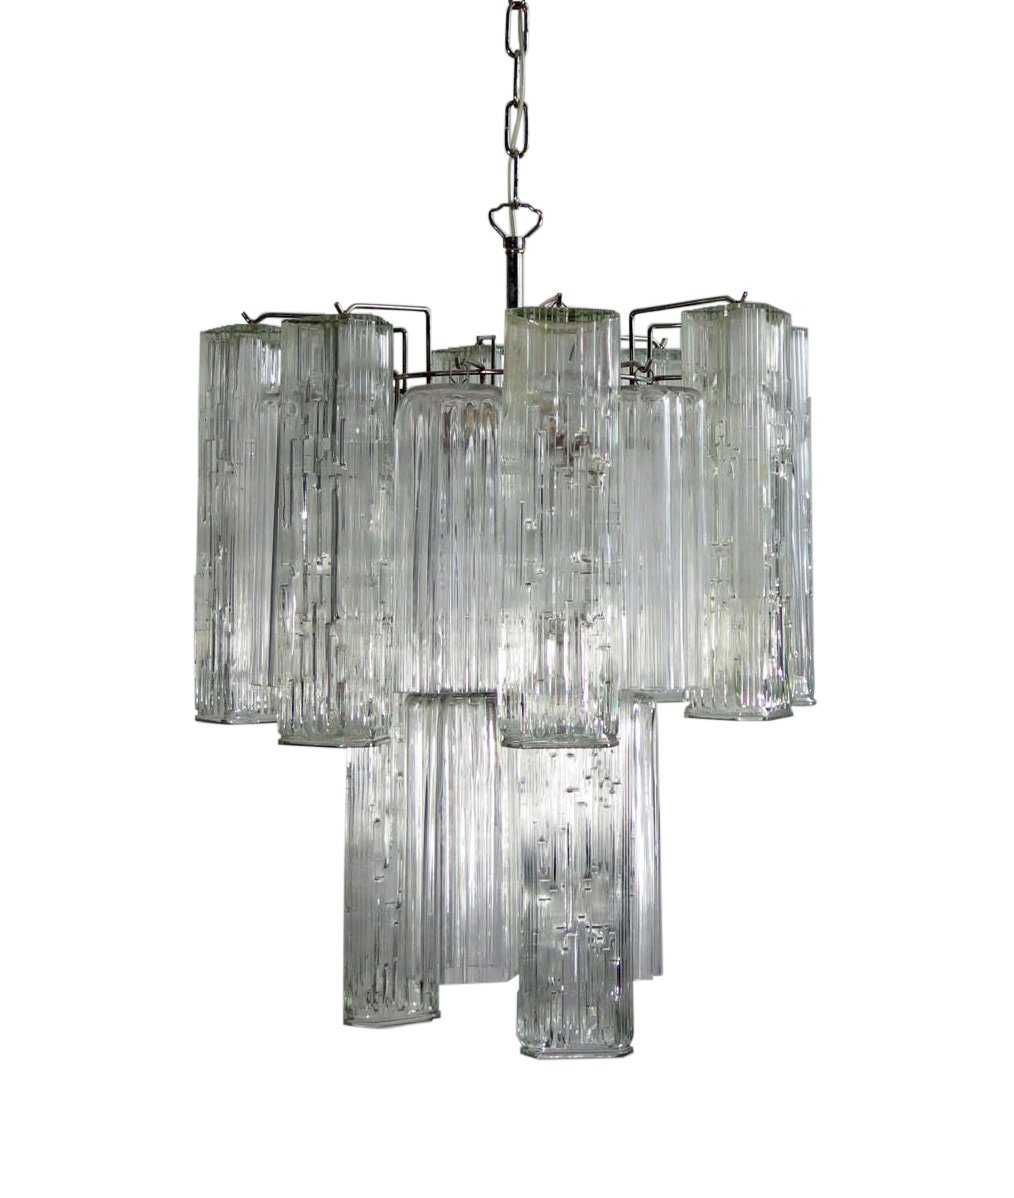 Vintage murano glass chandelier from murano for sale at pamono arubaitofo Images